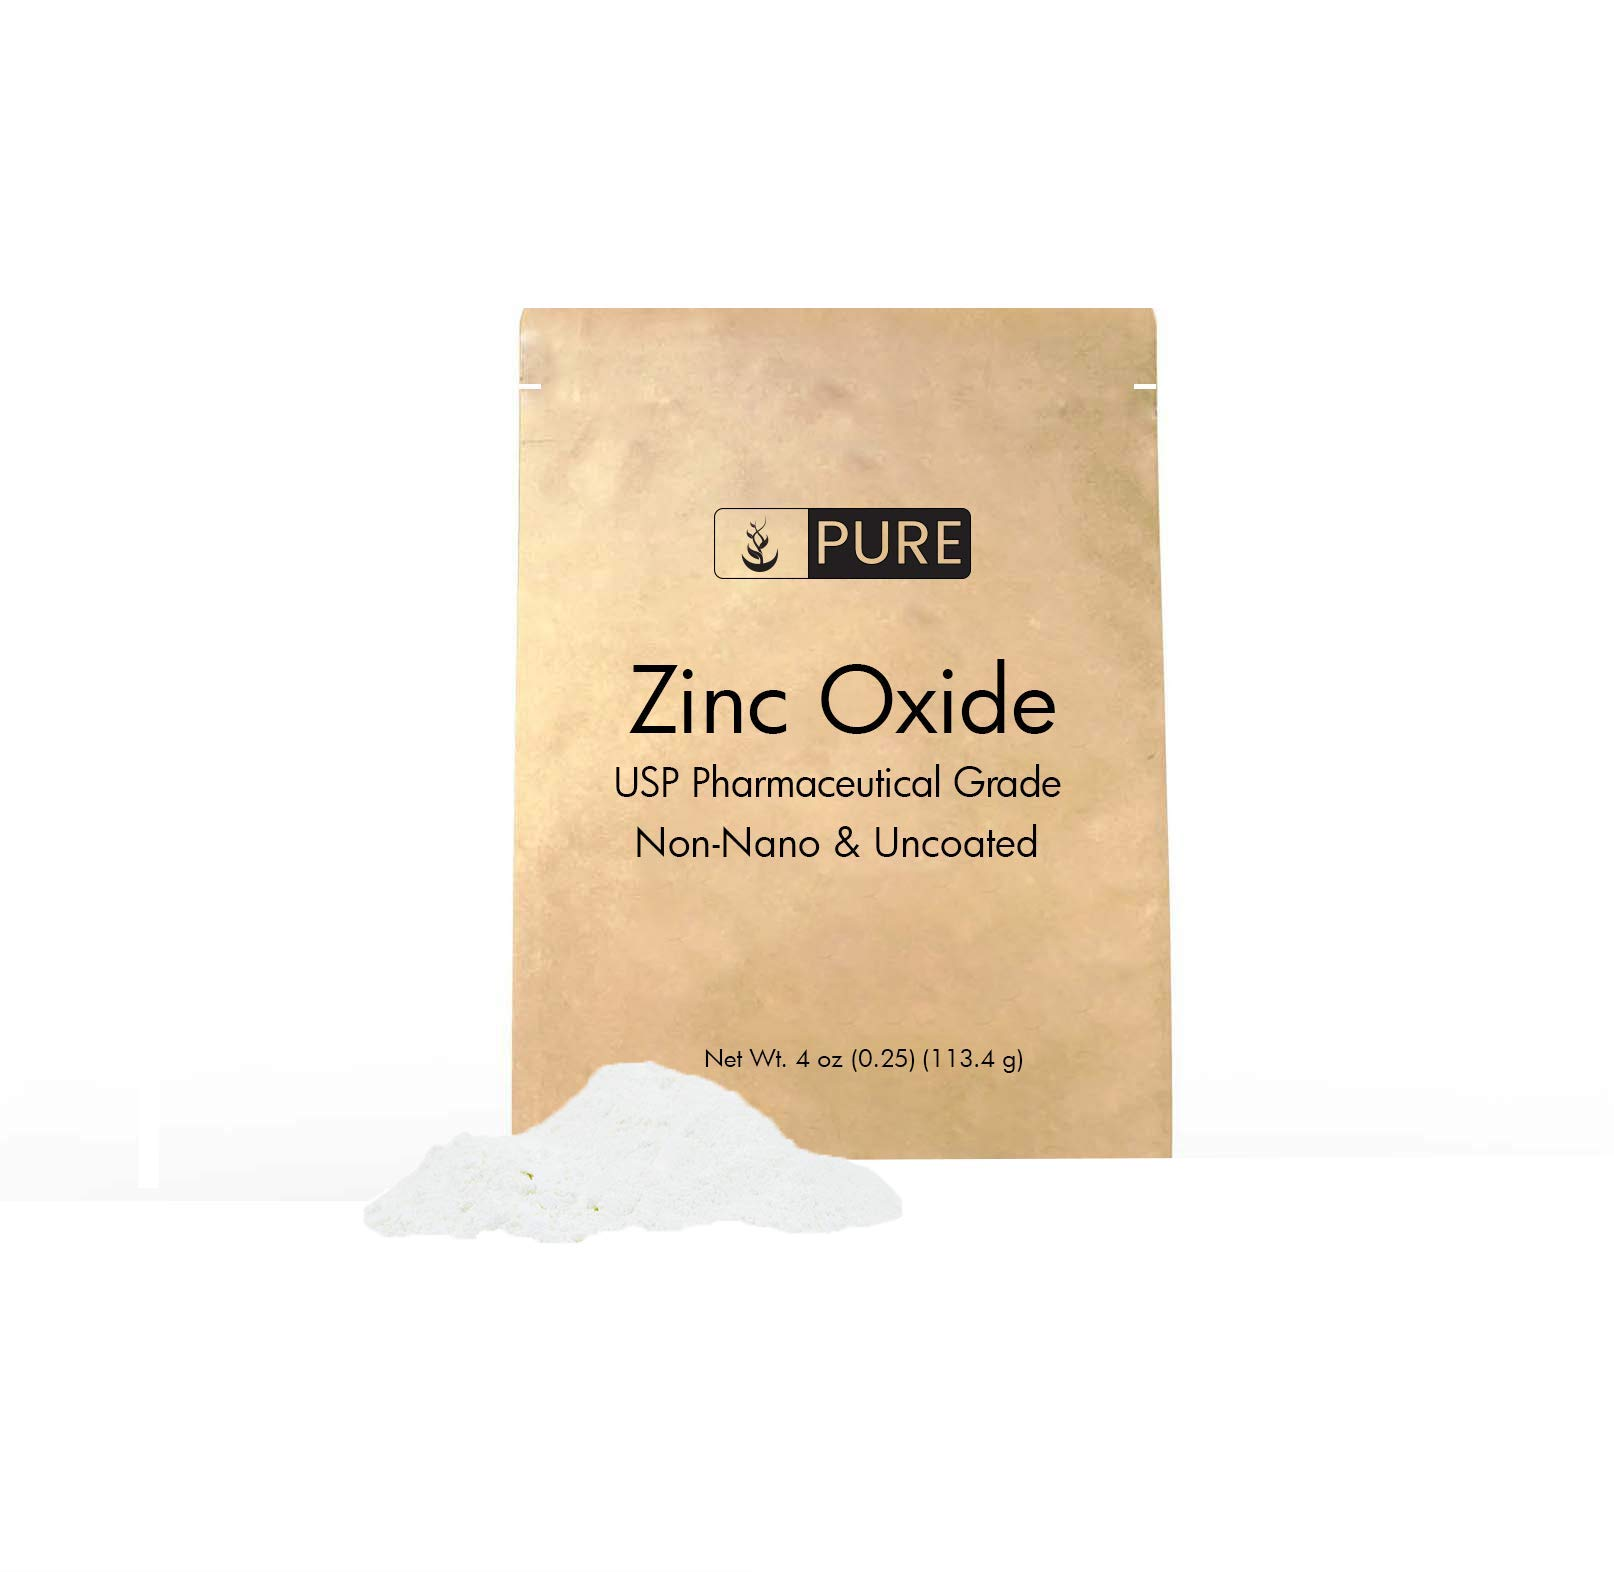 Zinc Oxide Powder (4 oz.) by Pure Organic Ingredients, Eco-Friendly Packaging, Non-Nano, Uncoated, Food & USP Grade, For Sunscreen, Diaper Rash Ointment, Burn Relief & Chapped Lips Remedy